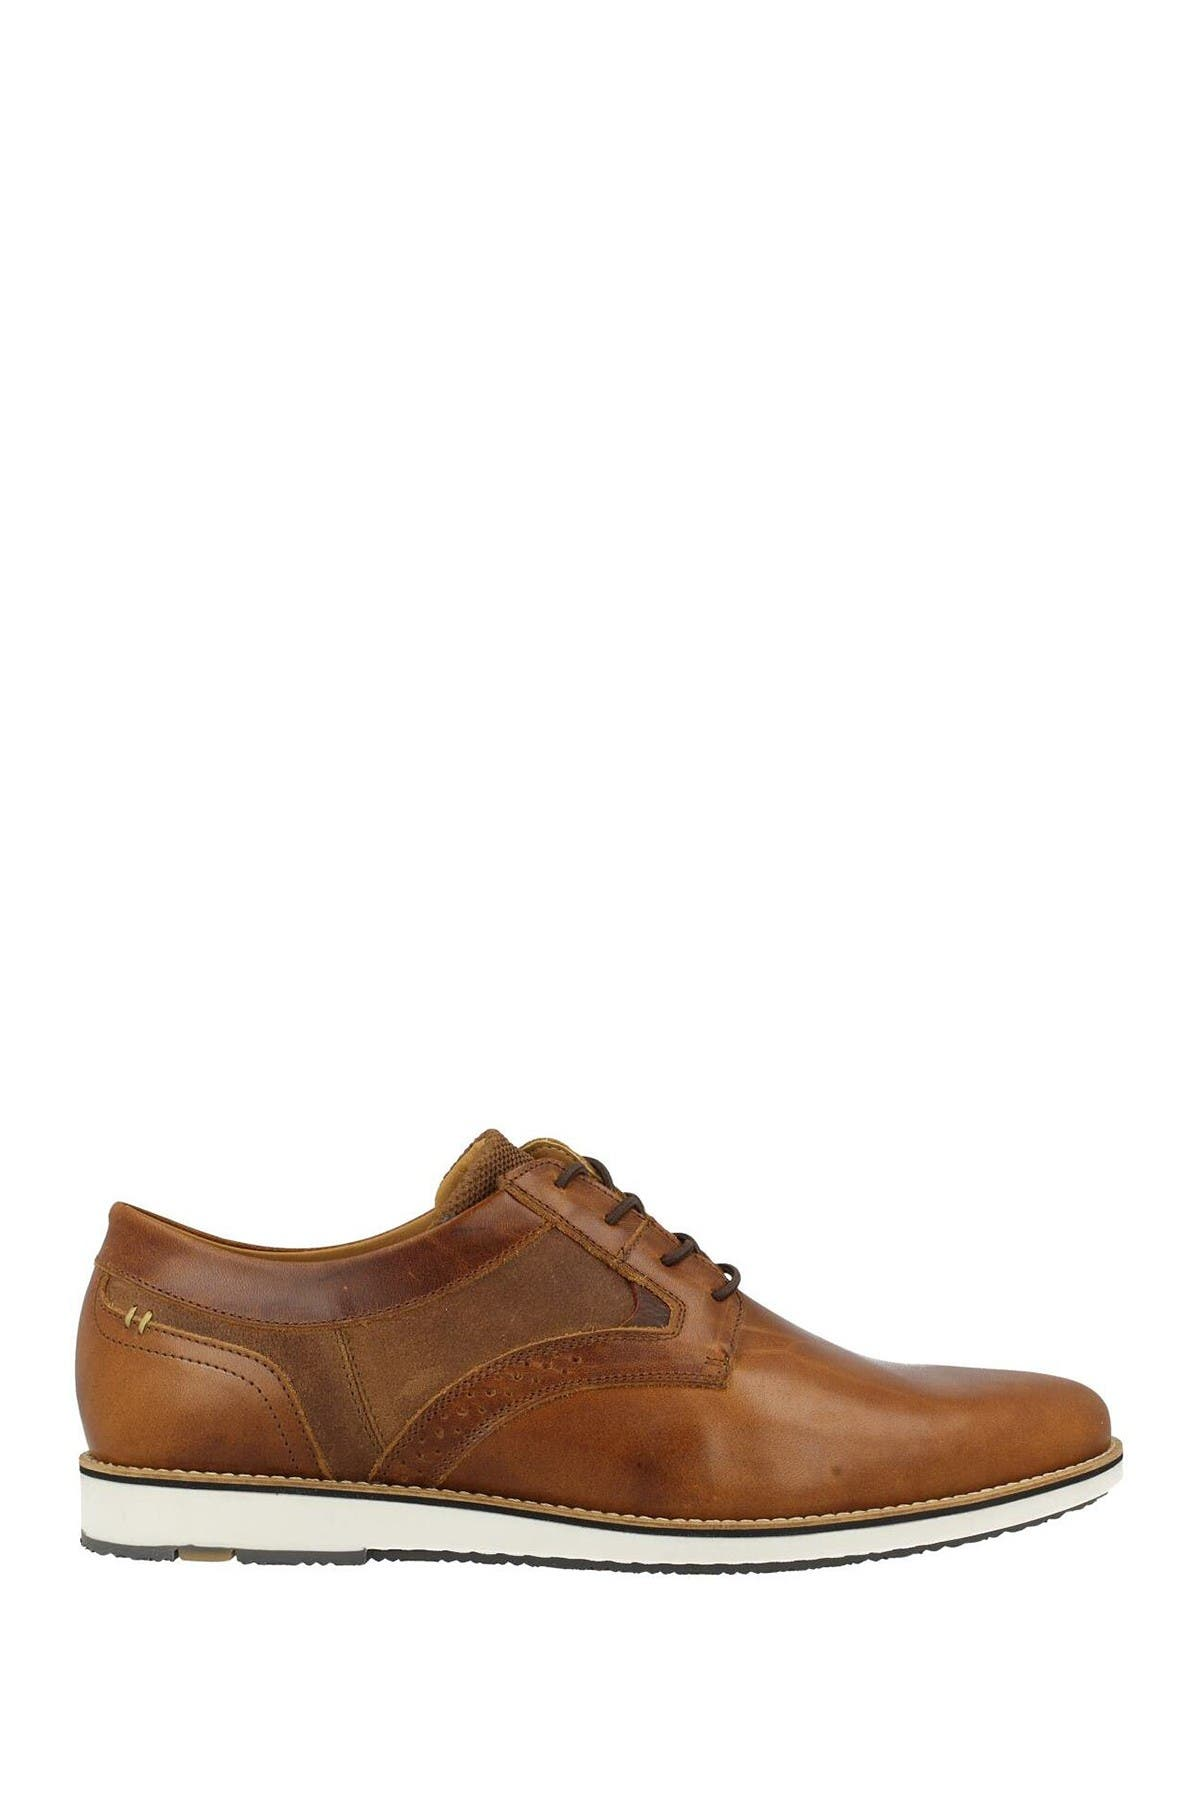 Image of Bullboxer Plain Toe Leather Derby